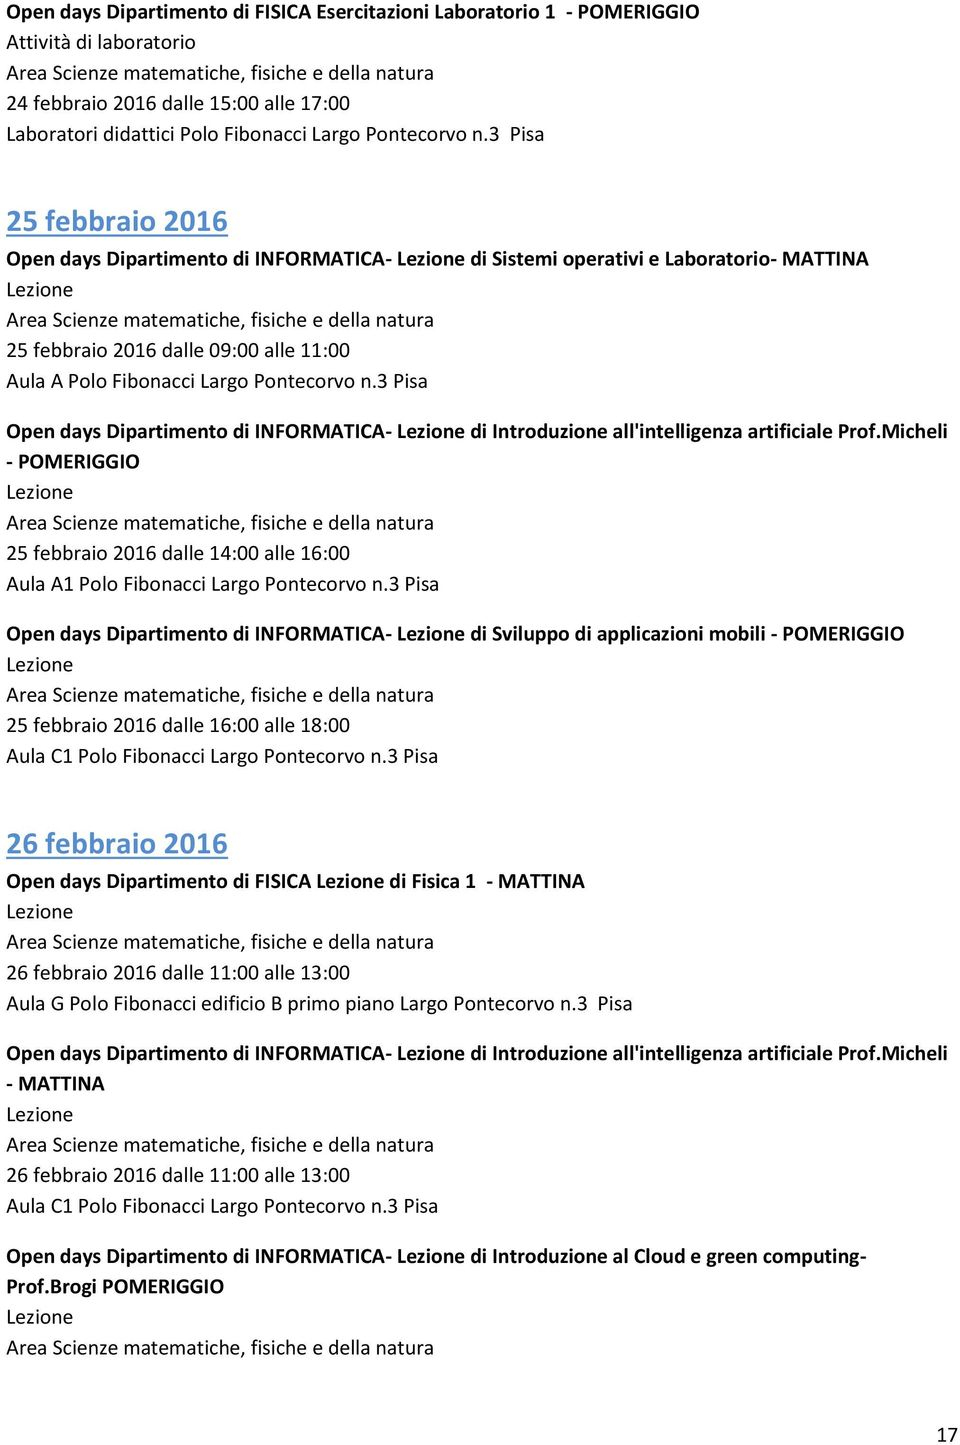 3 Pisa Open days Dipartimento di INFORMATICA- di Introduzione all'intelligenza artificiale Prof.Micheli - POMERIGGIO 25 febbraio 2016 dalle 14:00 alle 16:00 Aula A1 Polo Fibonacci Largo Pontecorvo n.